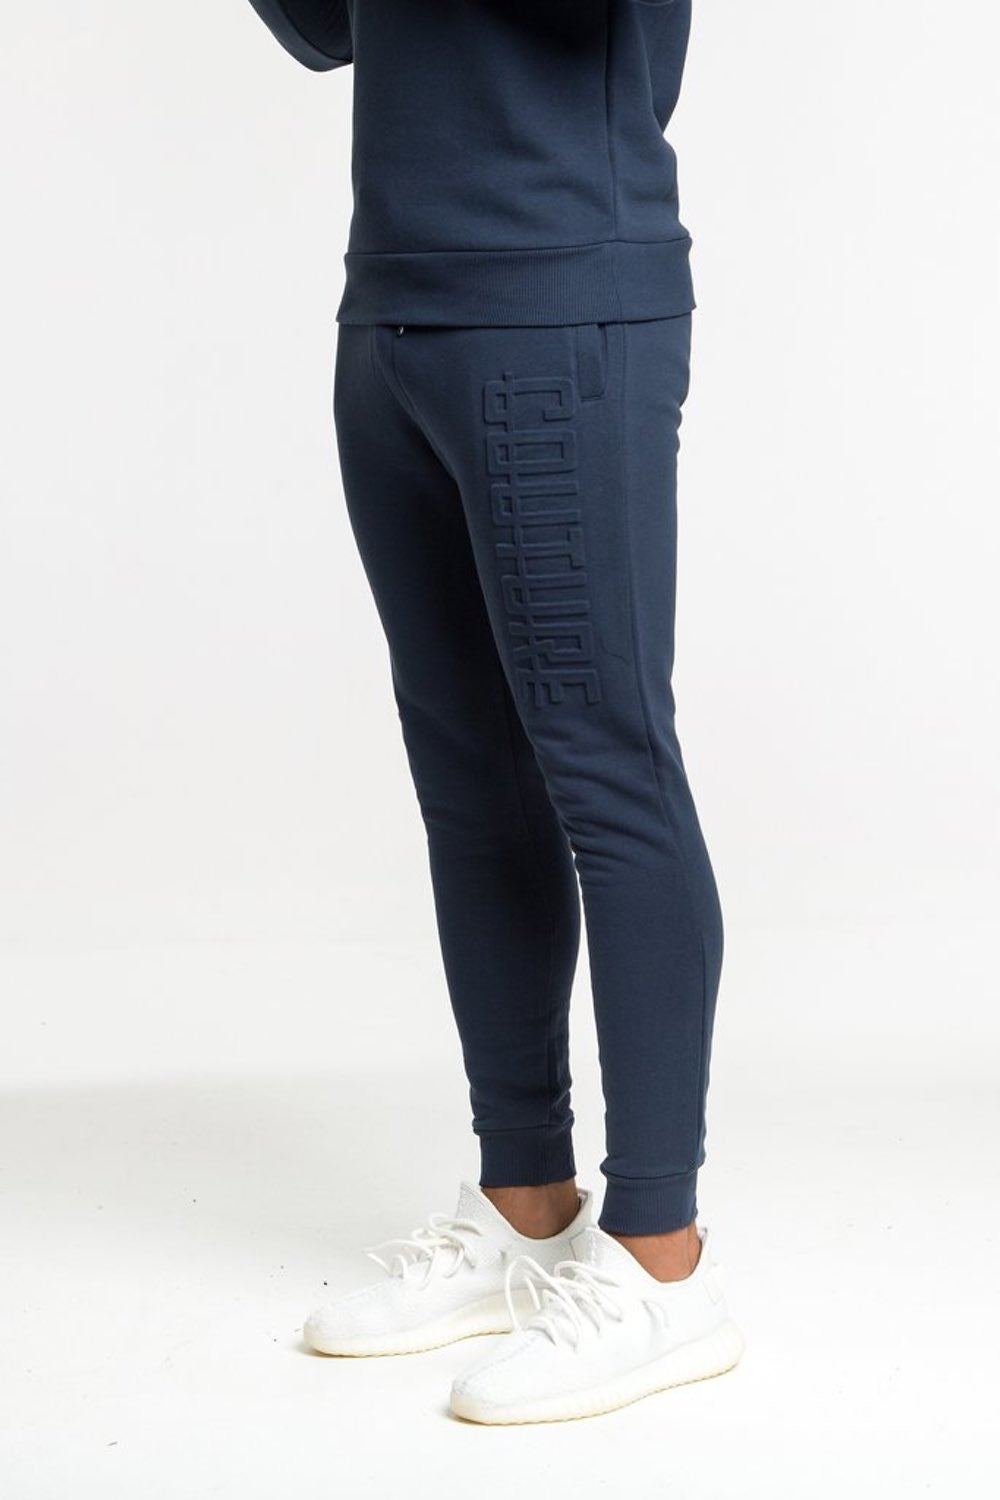 Fresh Couture Monaco Joggers - Navy - 3